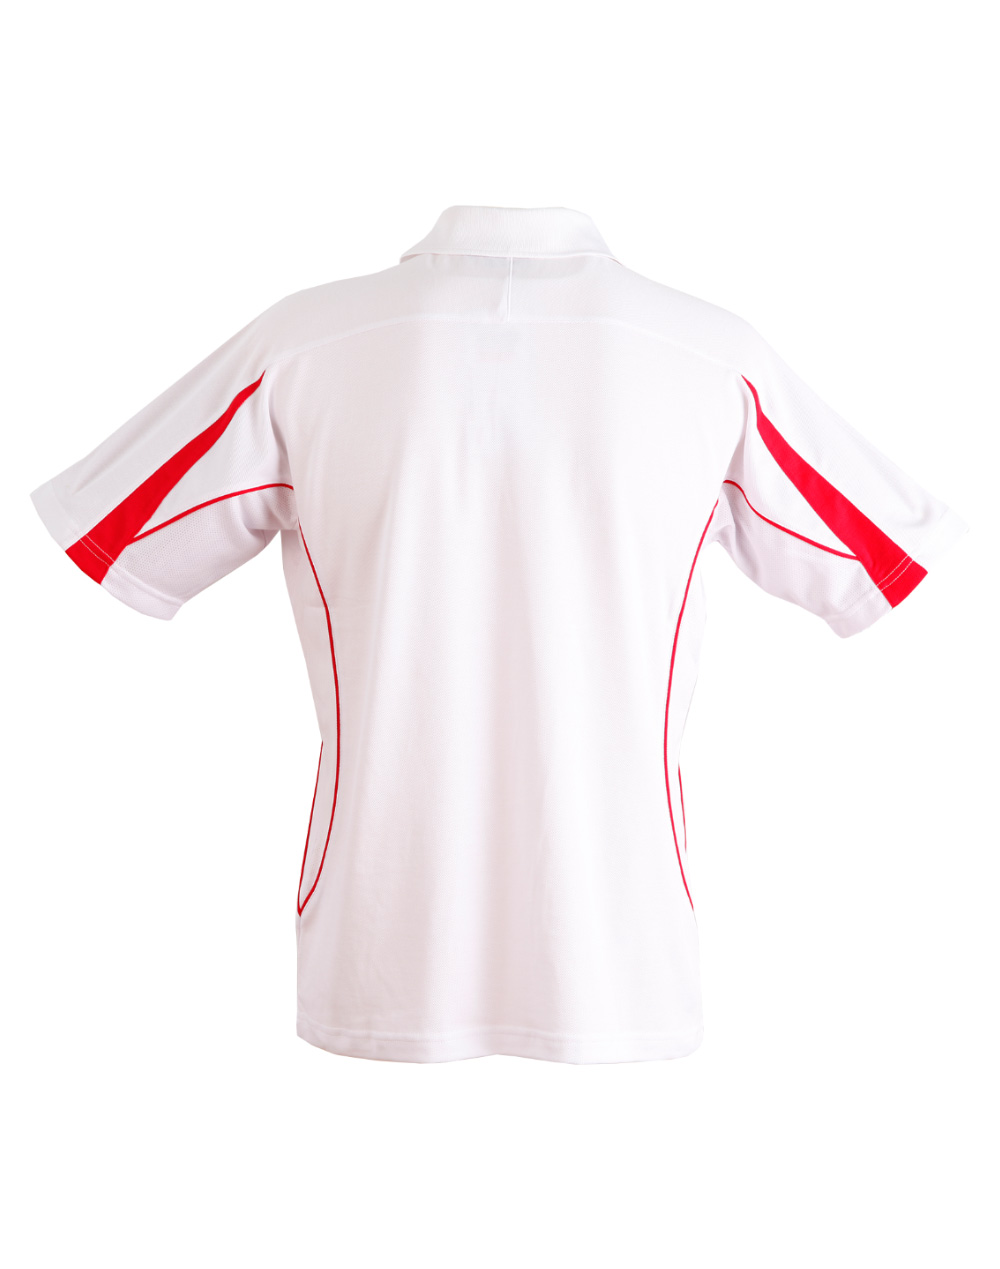 https://s3-ap-southeast-1.amazonaws.com/ws-imgs/POLOSHIRTS/PS53_WhiteRed_BACK_l.jpg